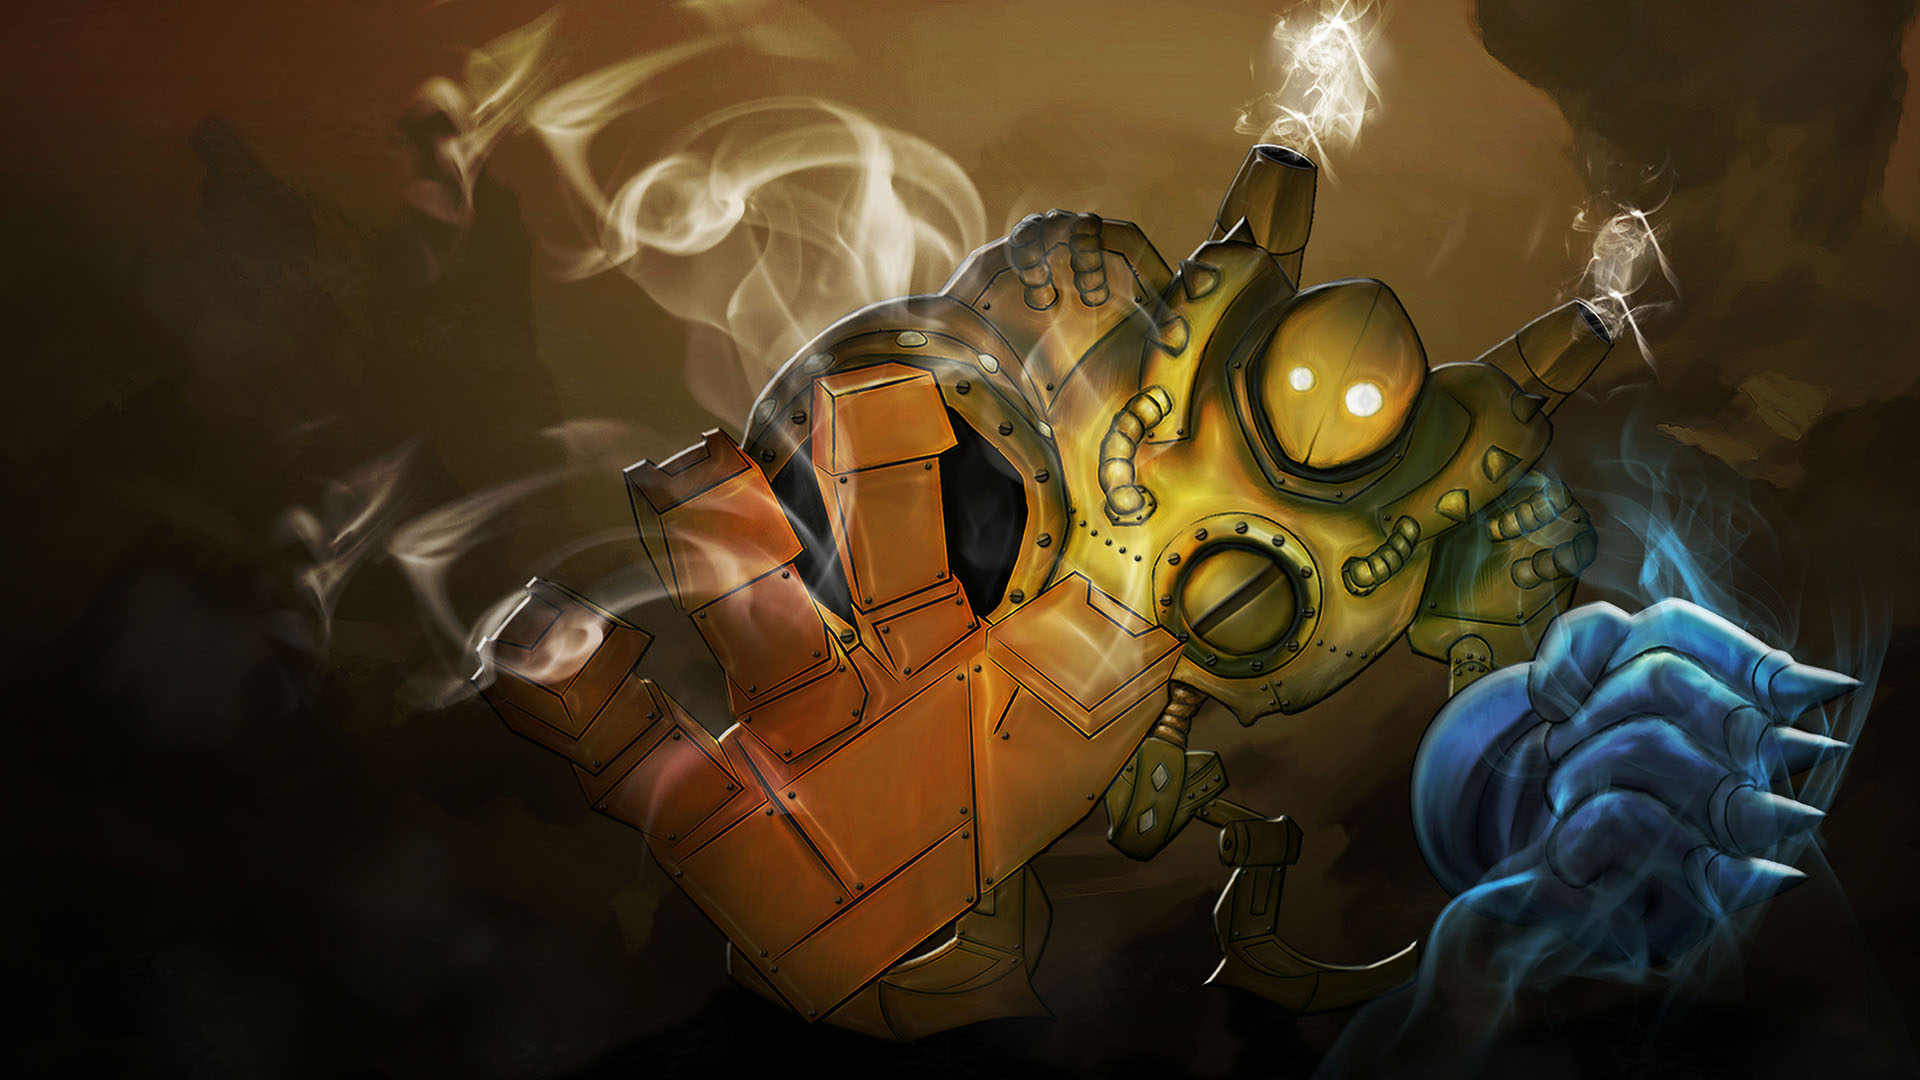 Blitzcrank League Of Legends Wallpaper HD 1920x1080